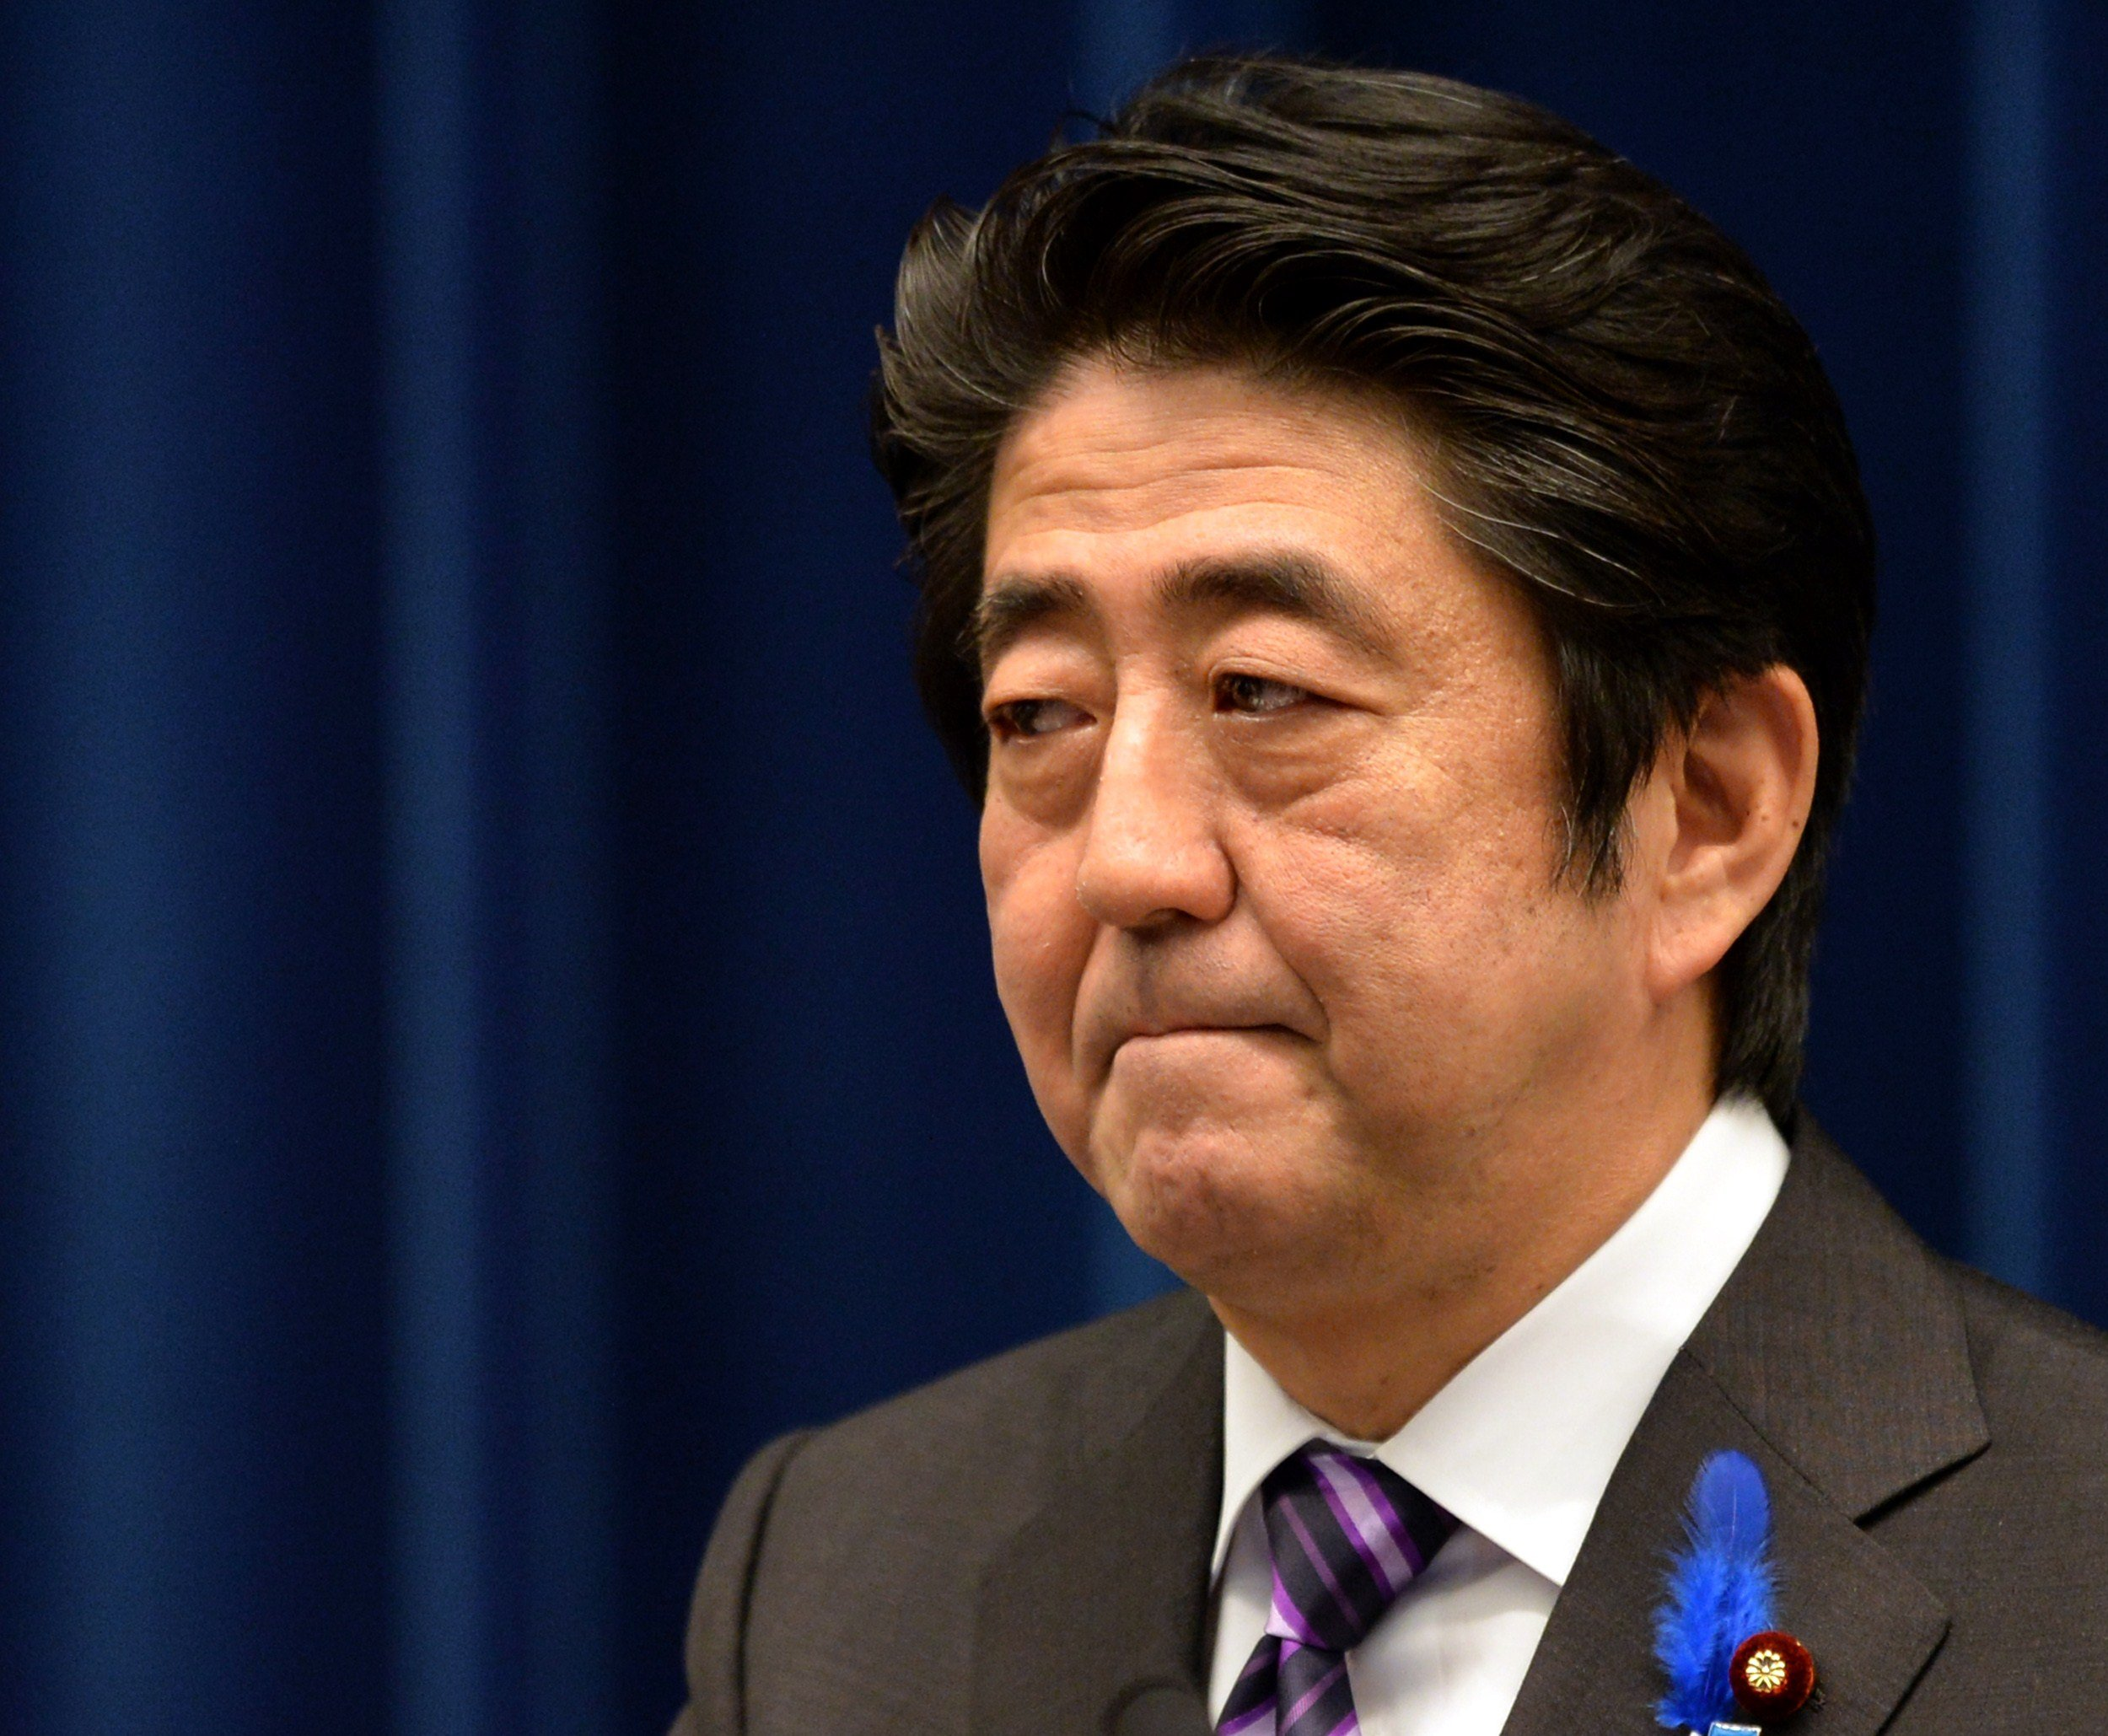 Japanese Prime Minister Shinzo Abe speaks during a press conference at his official residence in Tokyo on July 1, 2014.